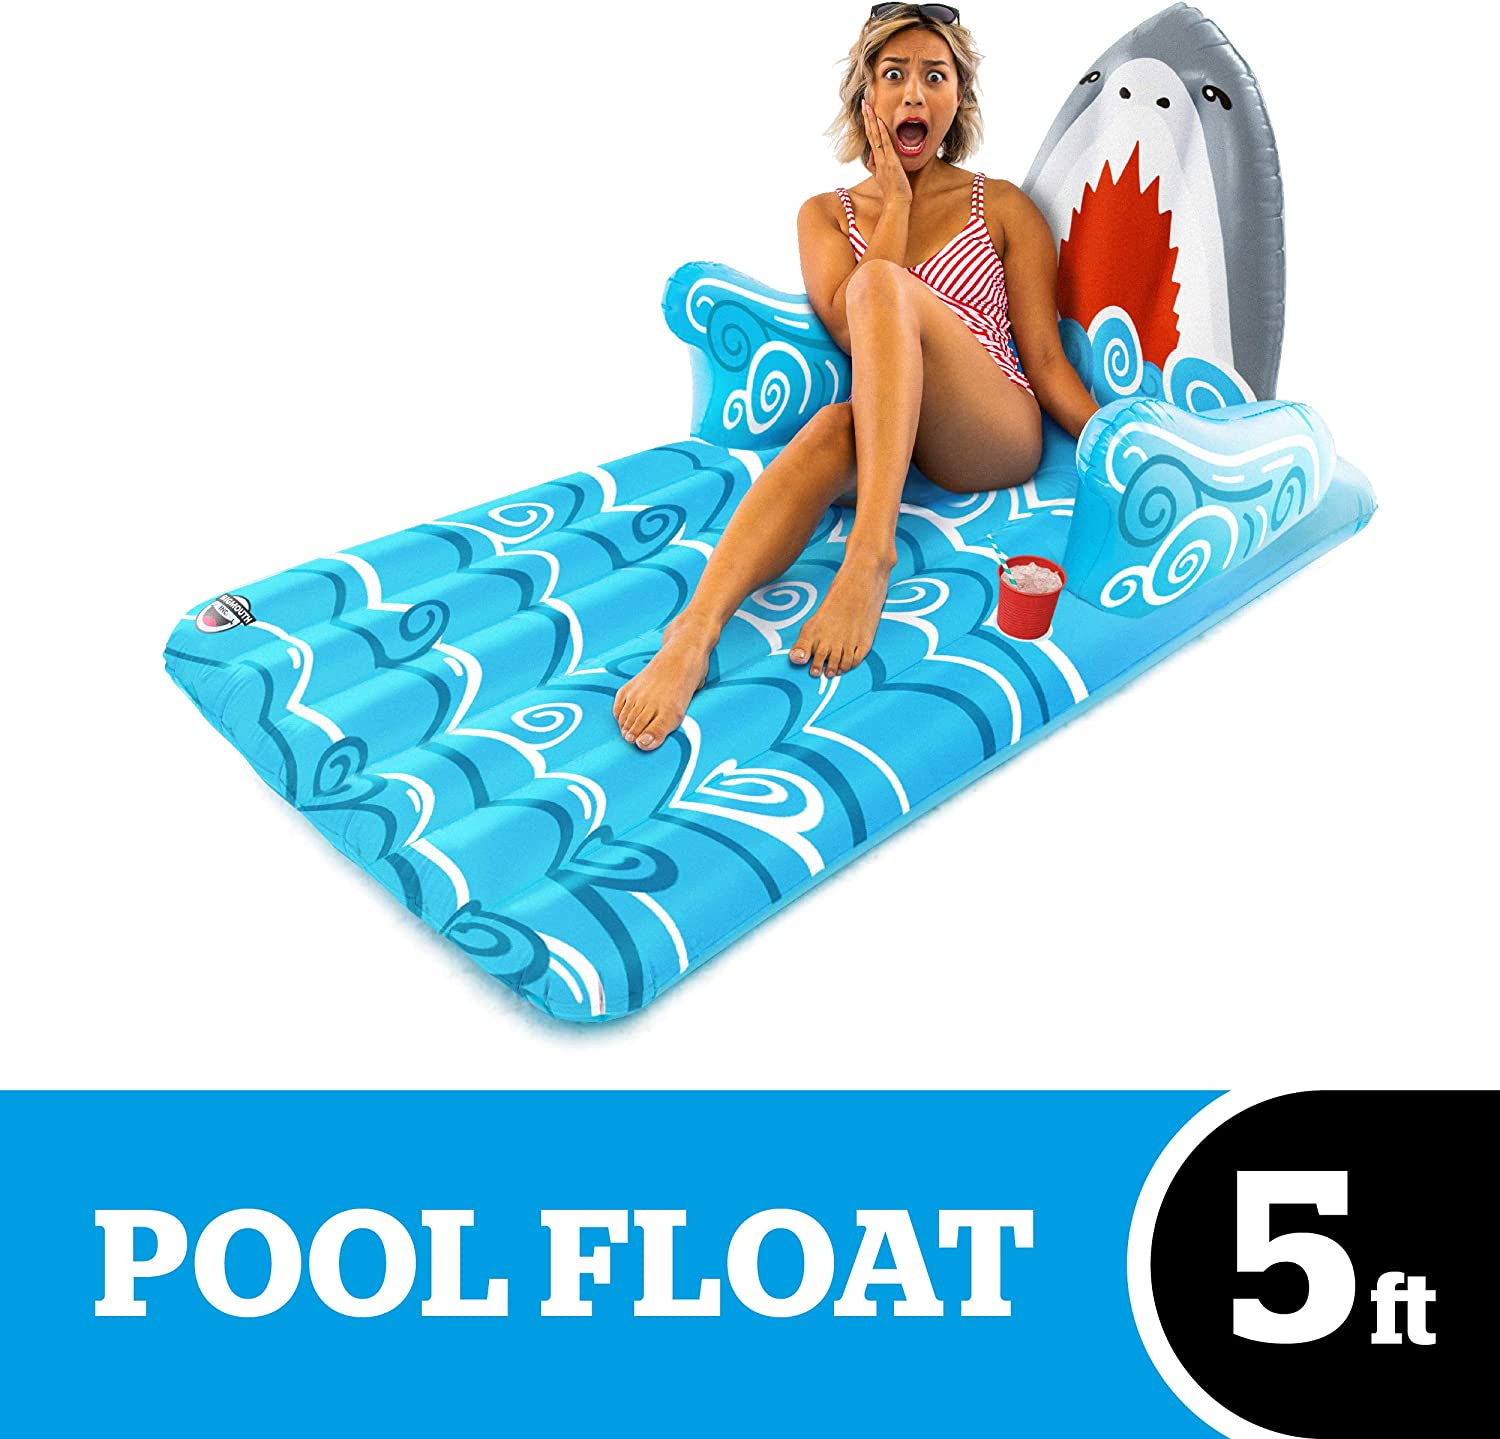 BigMouth Inc. Shark Lounger Float – 5 Foot Pool Float, Durable Inflatable Vinyl Summer Pool or Beach Lounger, Built-in Cup Holder, Makes a Great Gift